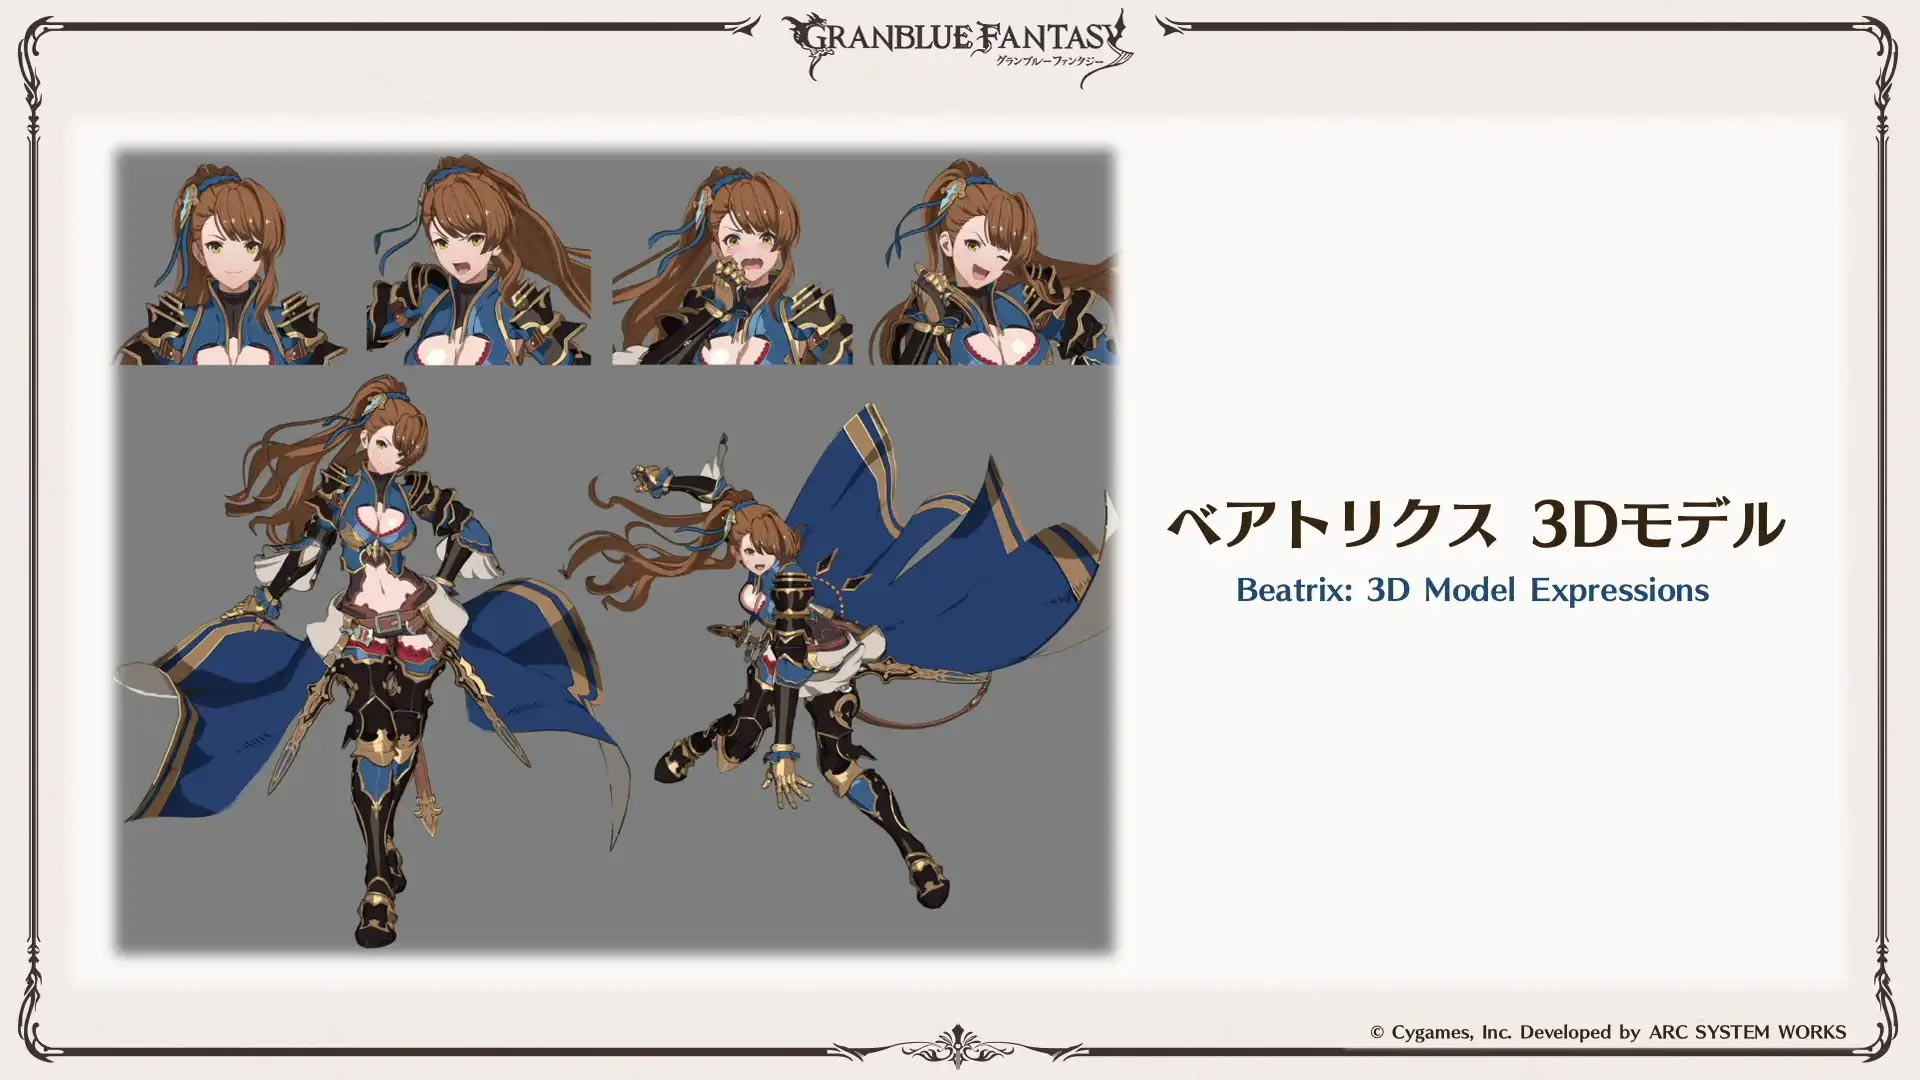 Granblue Fantasy Versus Eustace Reveal Trailer Gallery 7 out of 11 image gallery